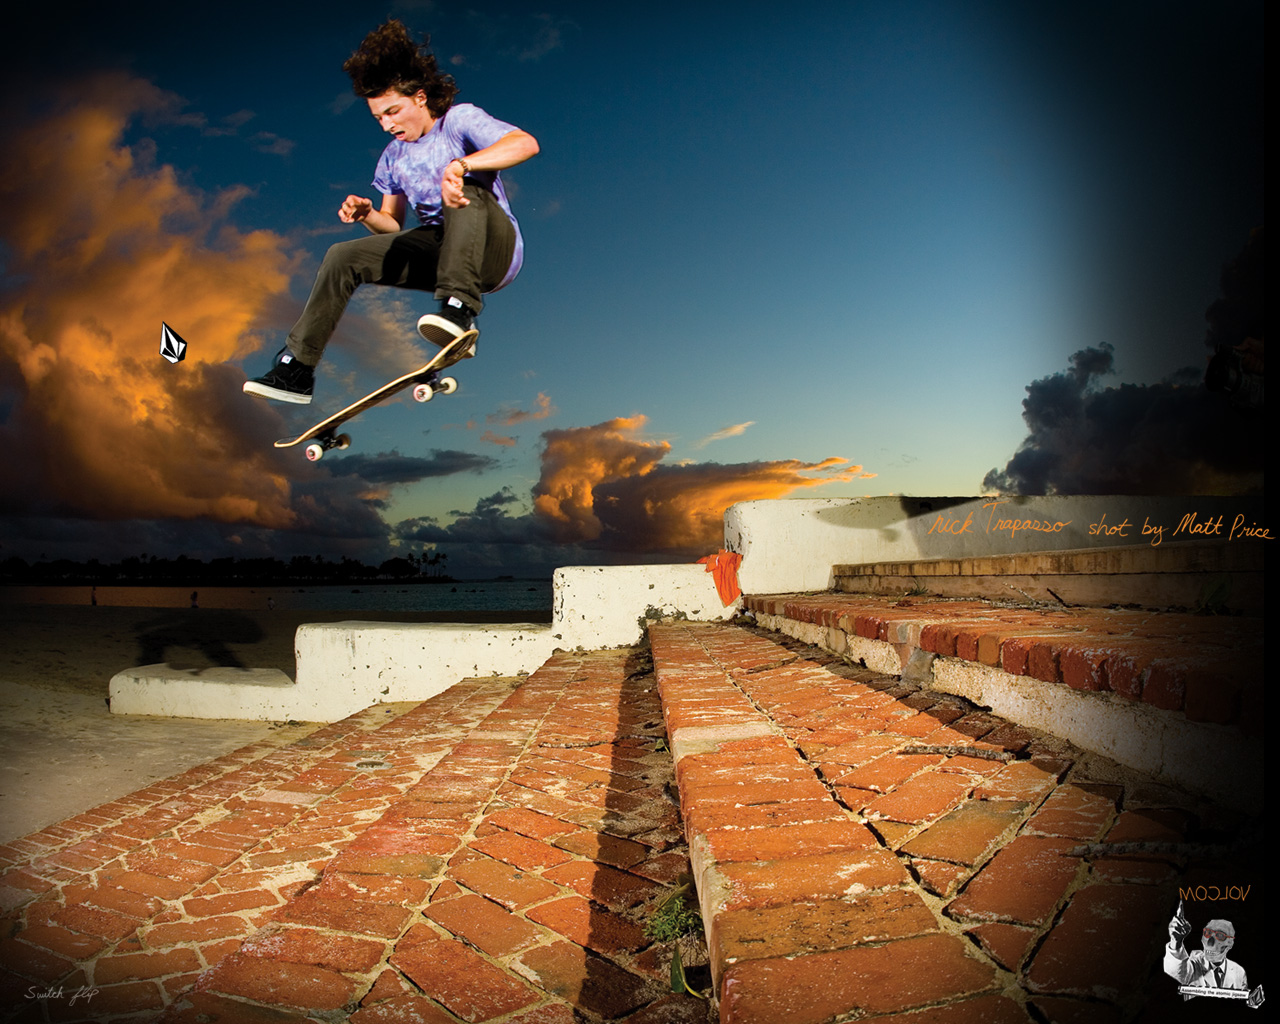 Skate Wallpaper Desktop - WallpaperSafari